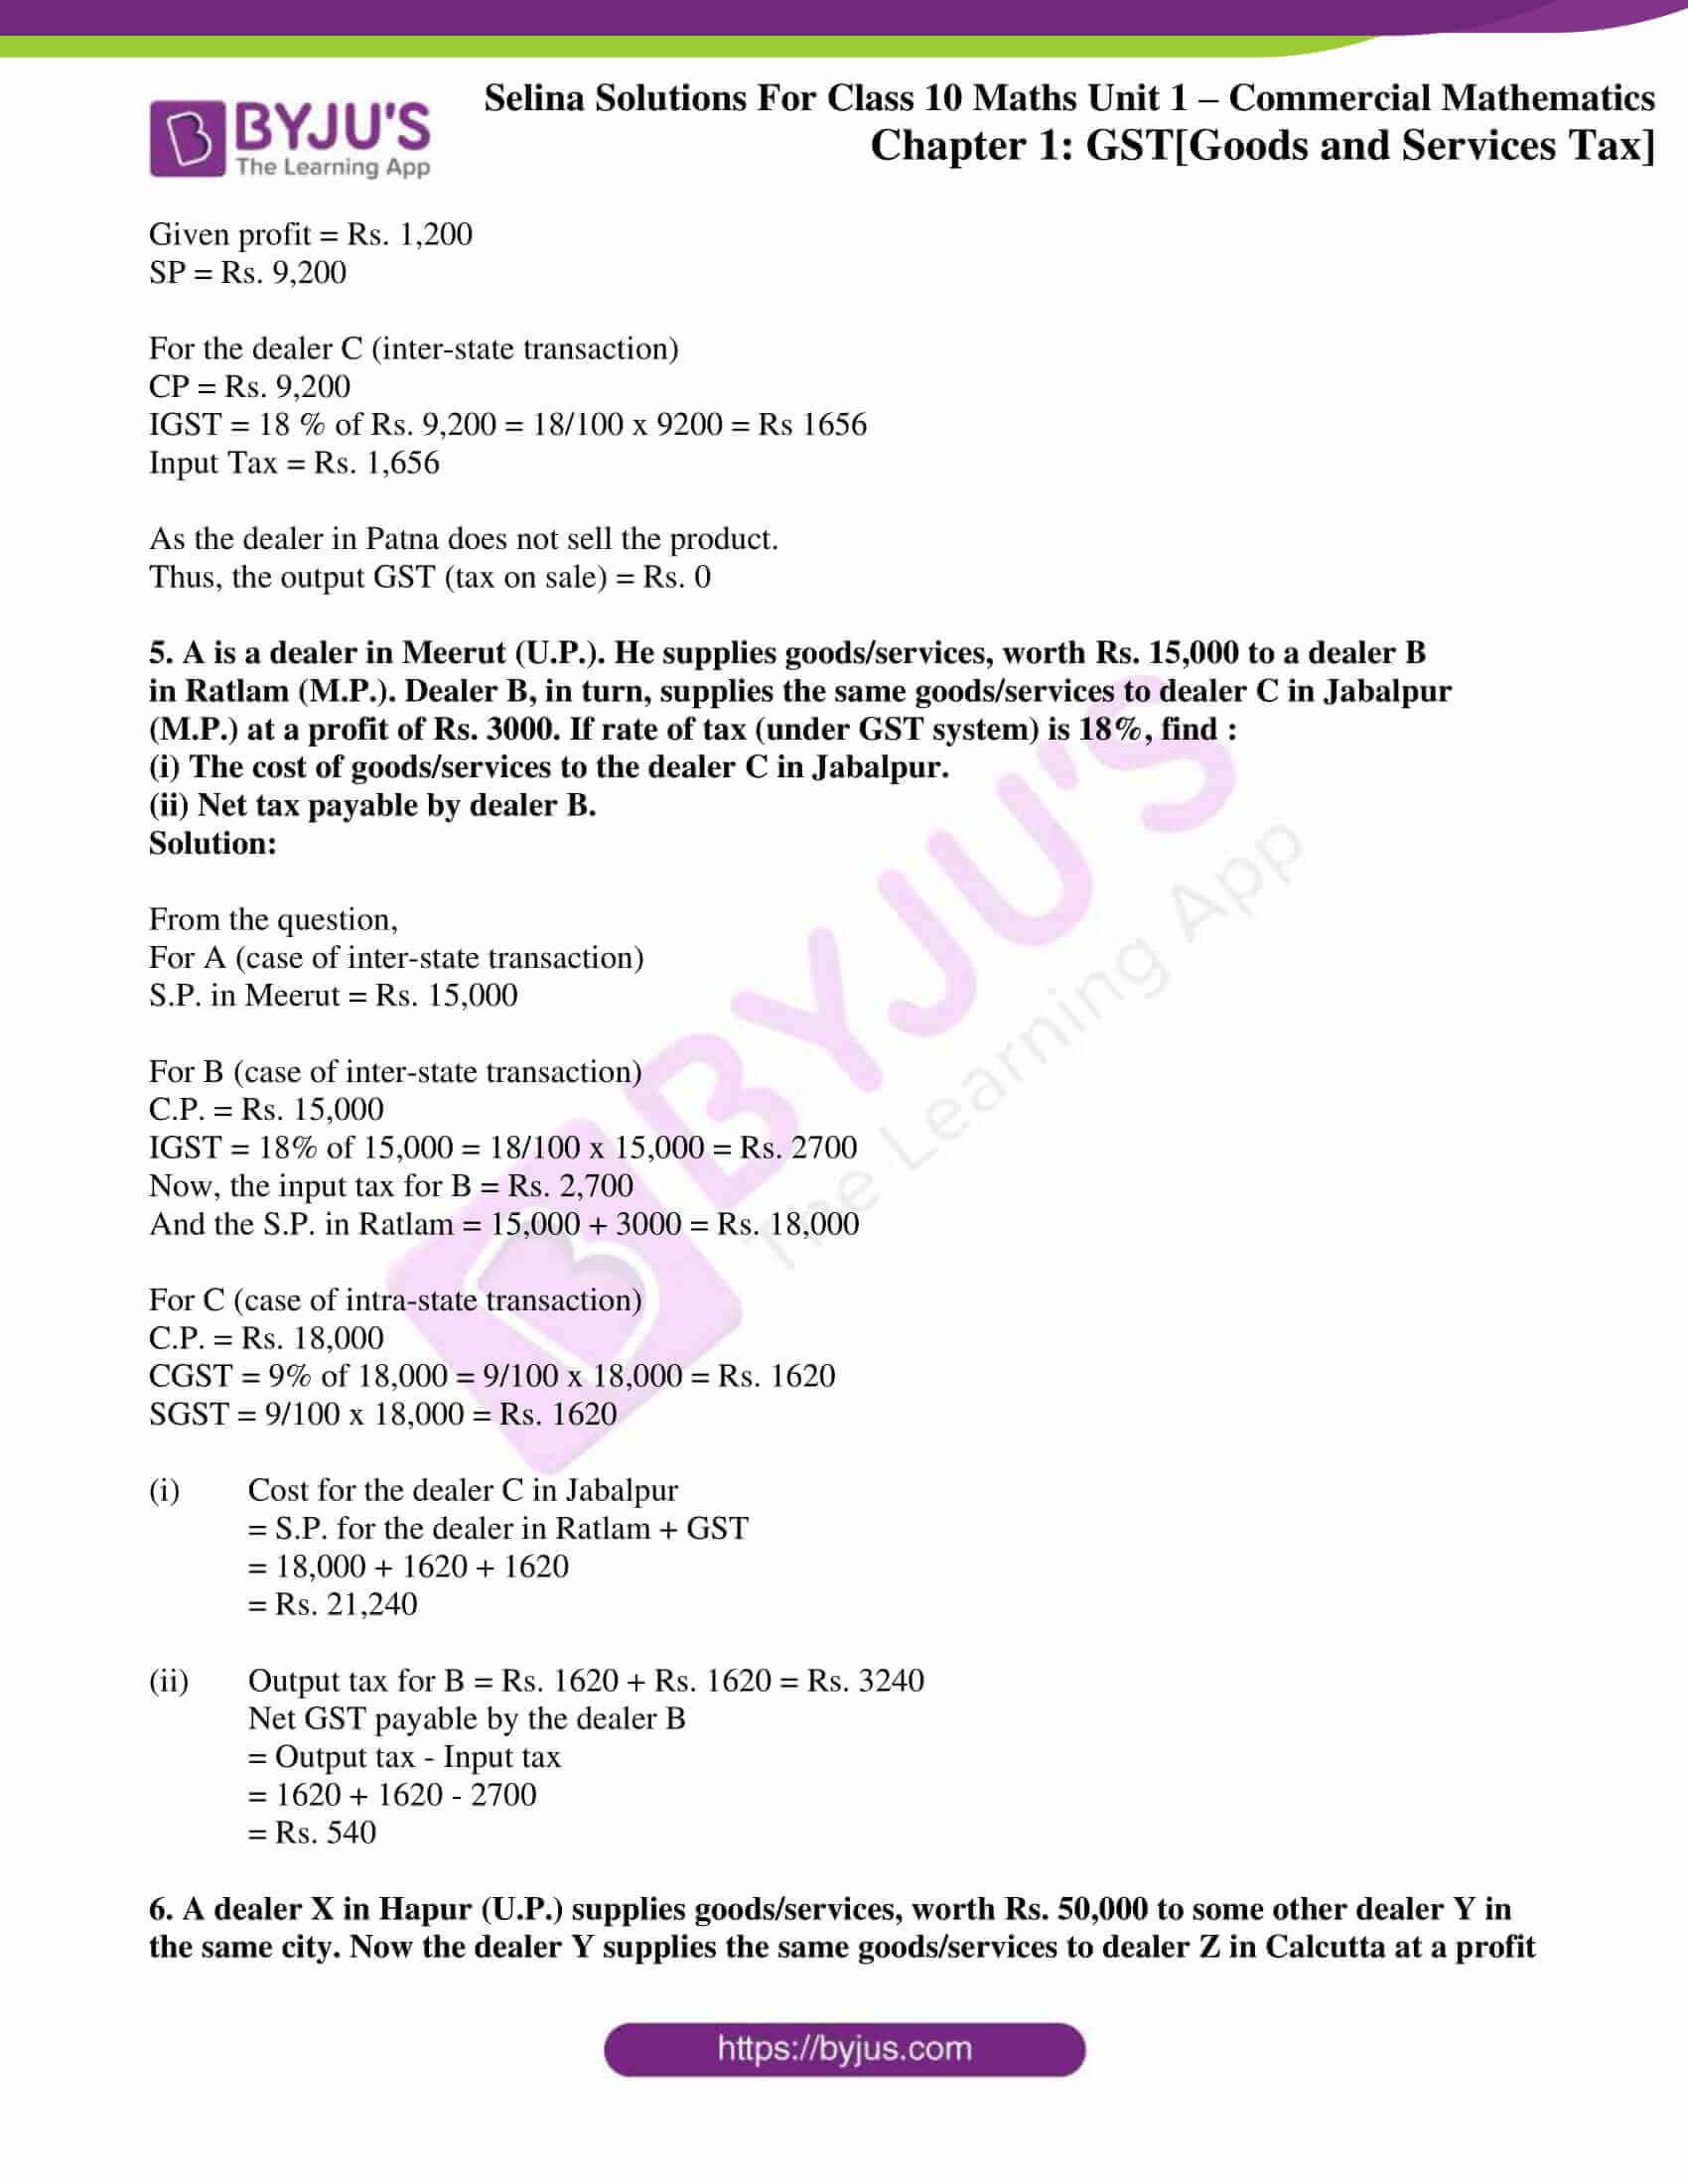 selina solution concise maths class 10 chapter 1 ex b 3